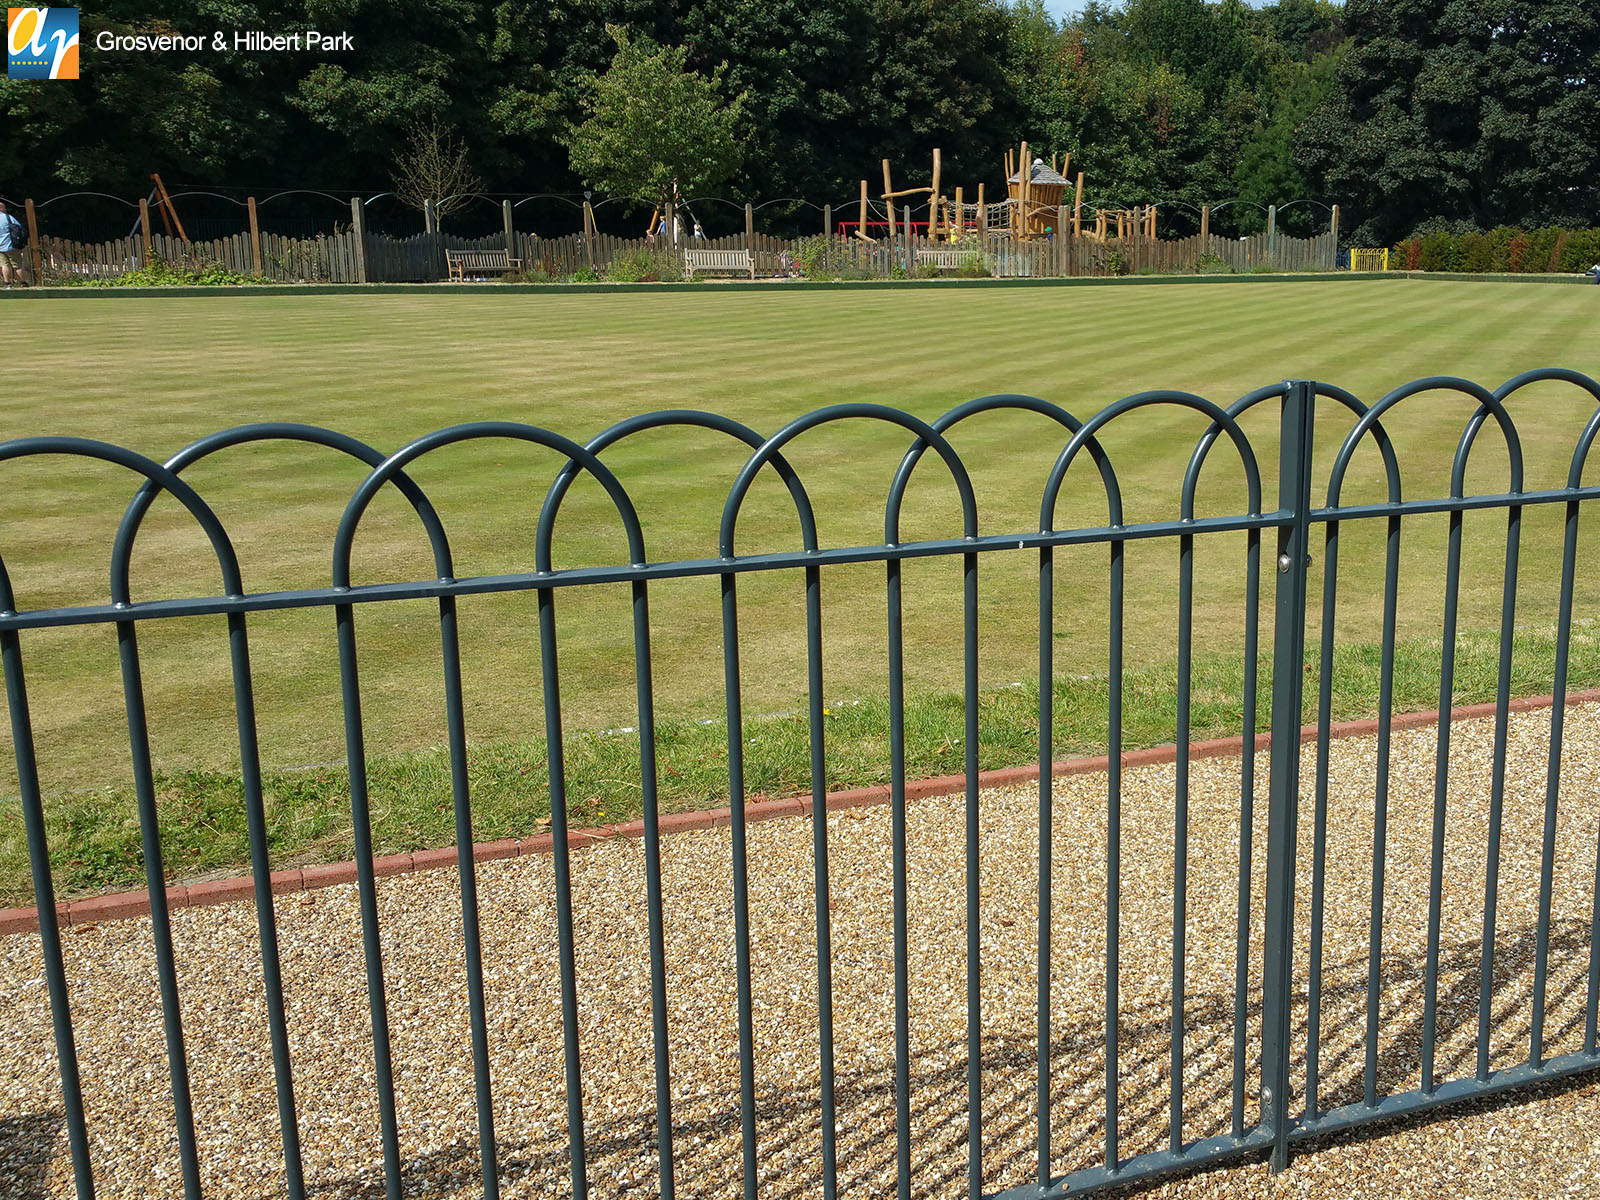 Grosvenor & Hilbert Park Interlaced bow top railings